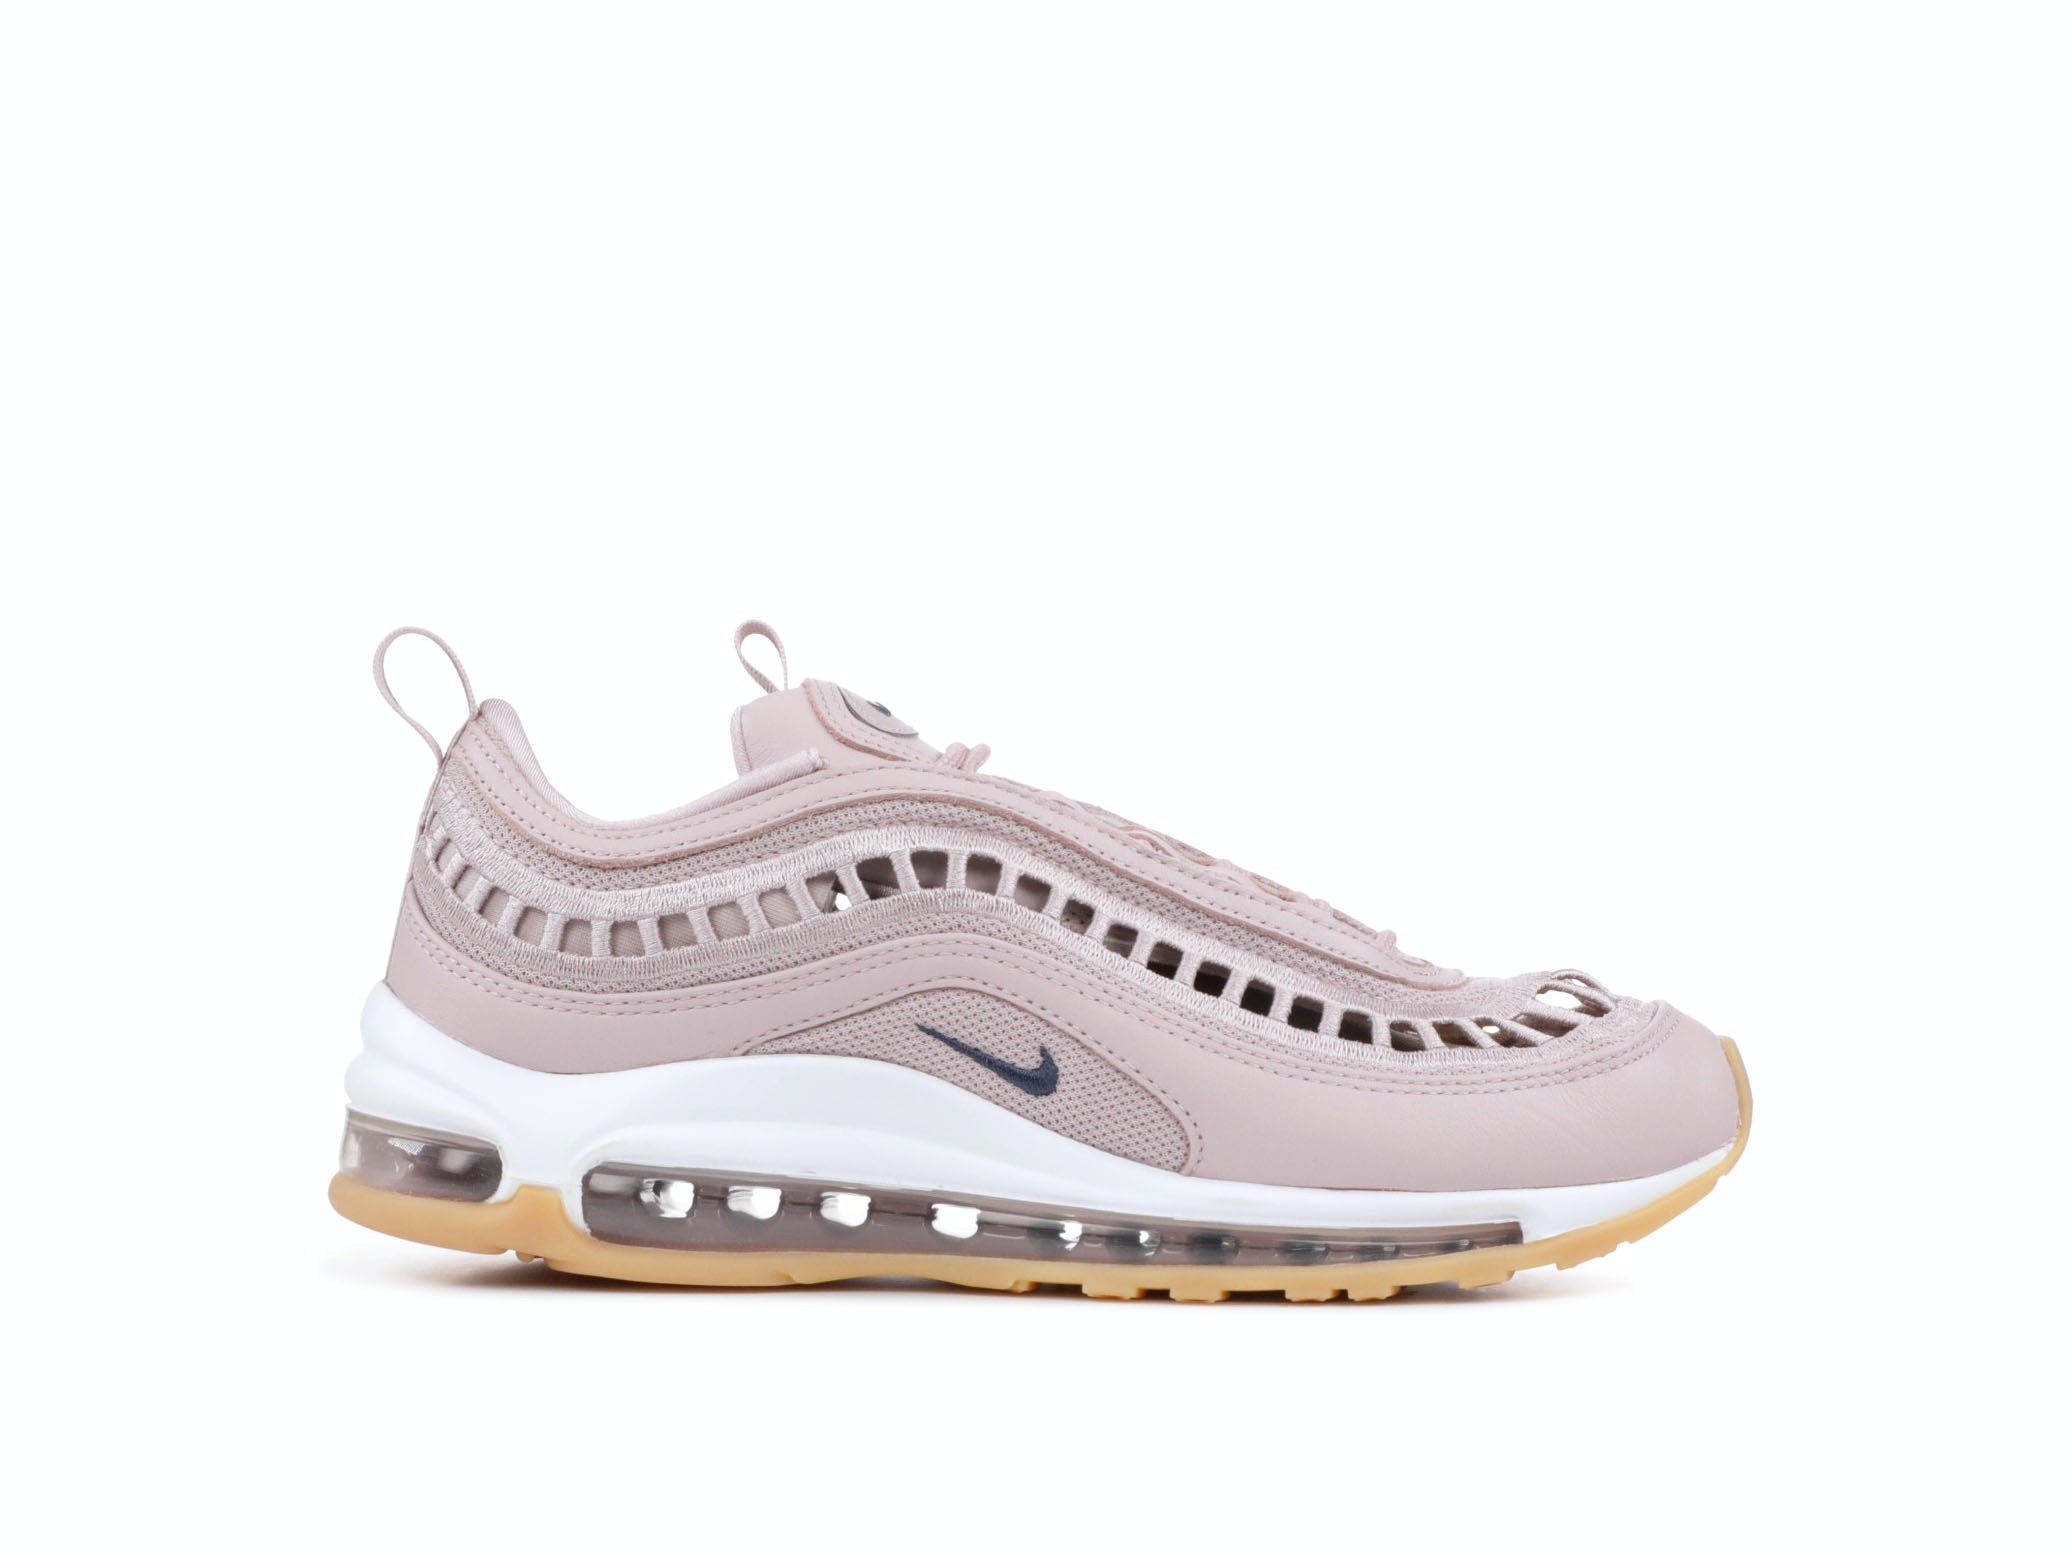 9be6e8bc9934 Shop Air Max 97 Ultra 17 SI Particle Rose (W) Online